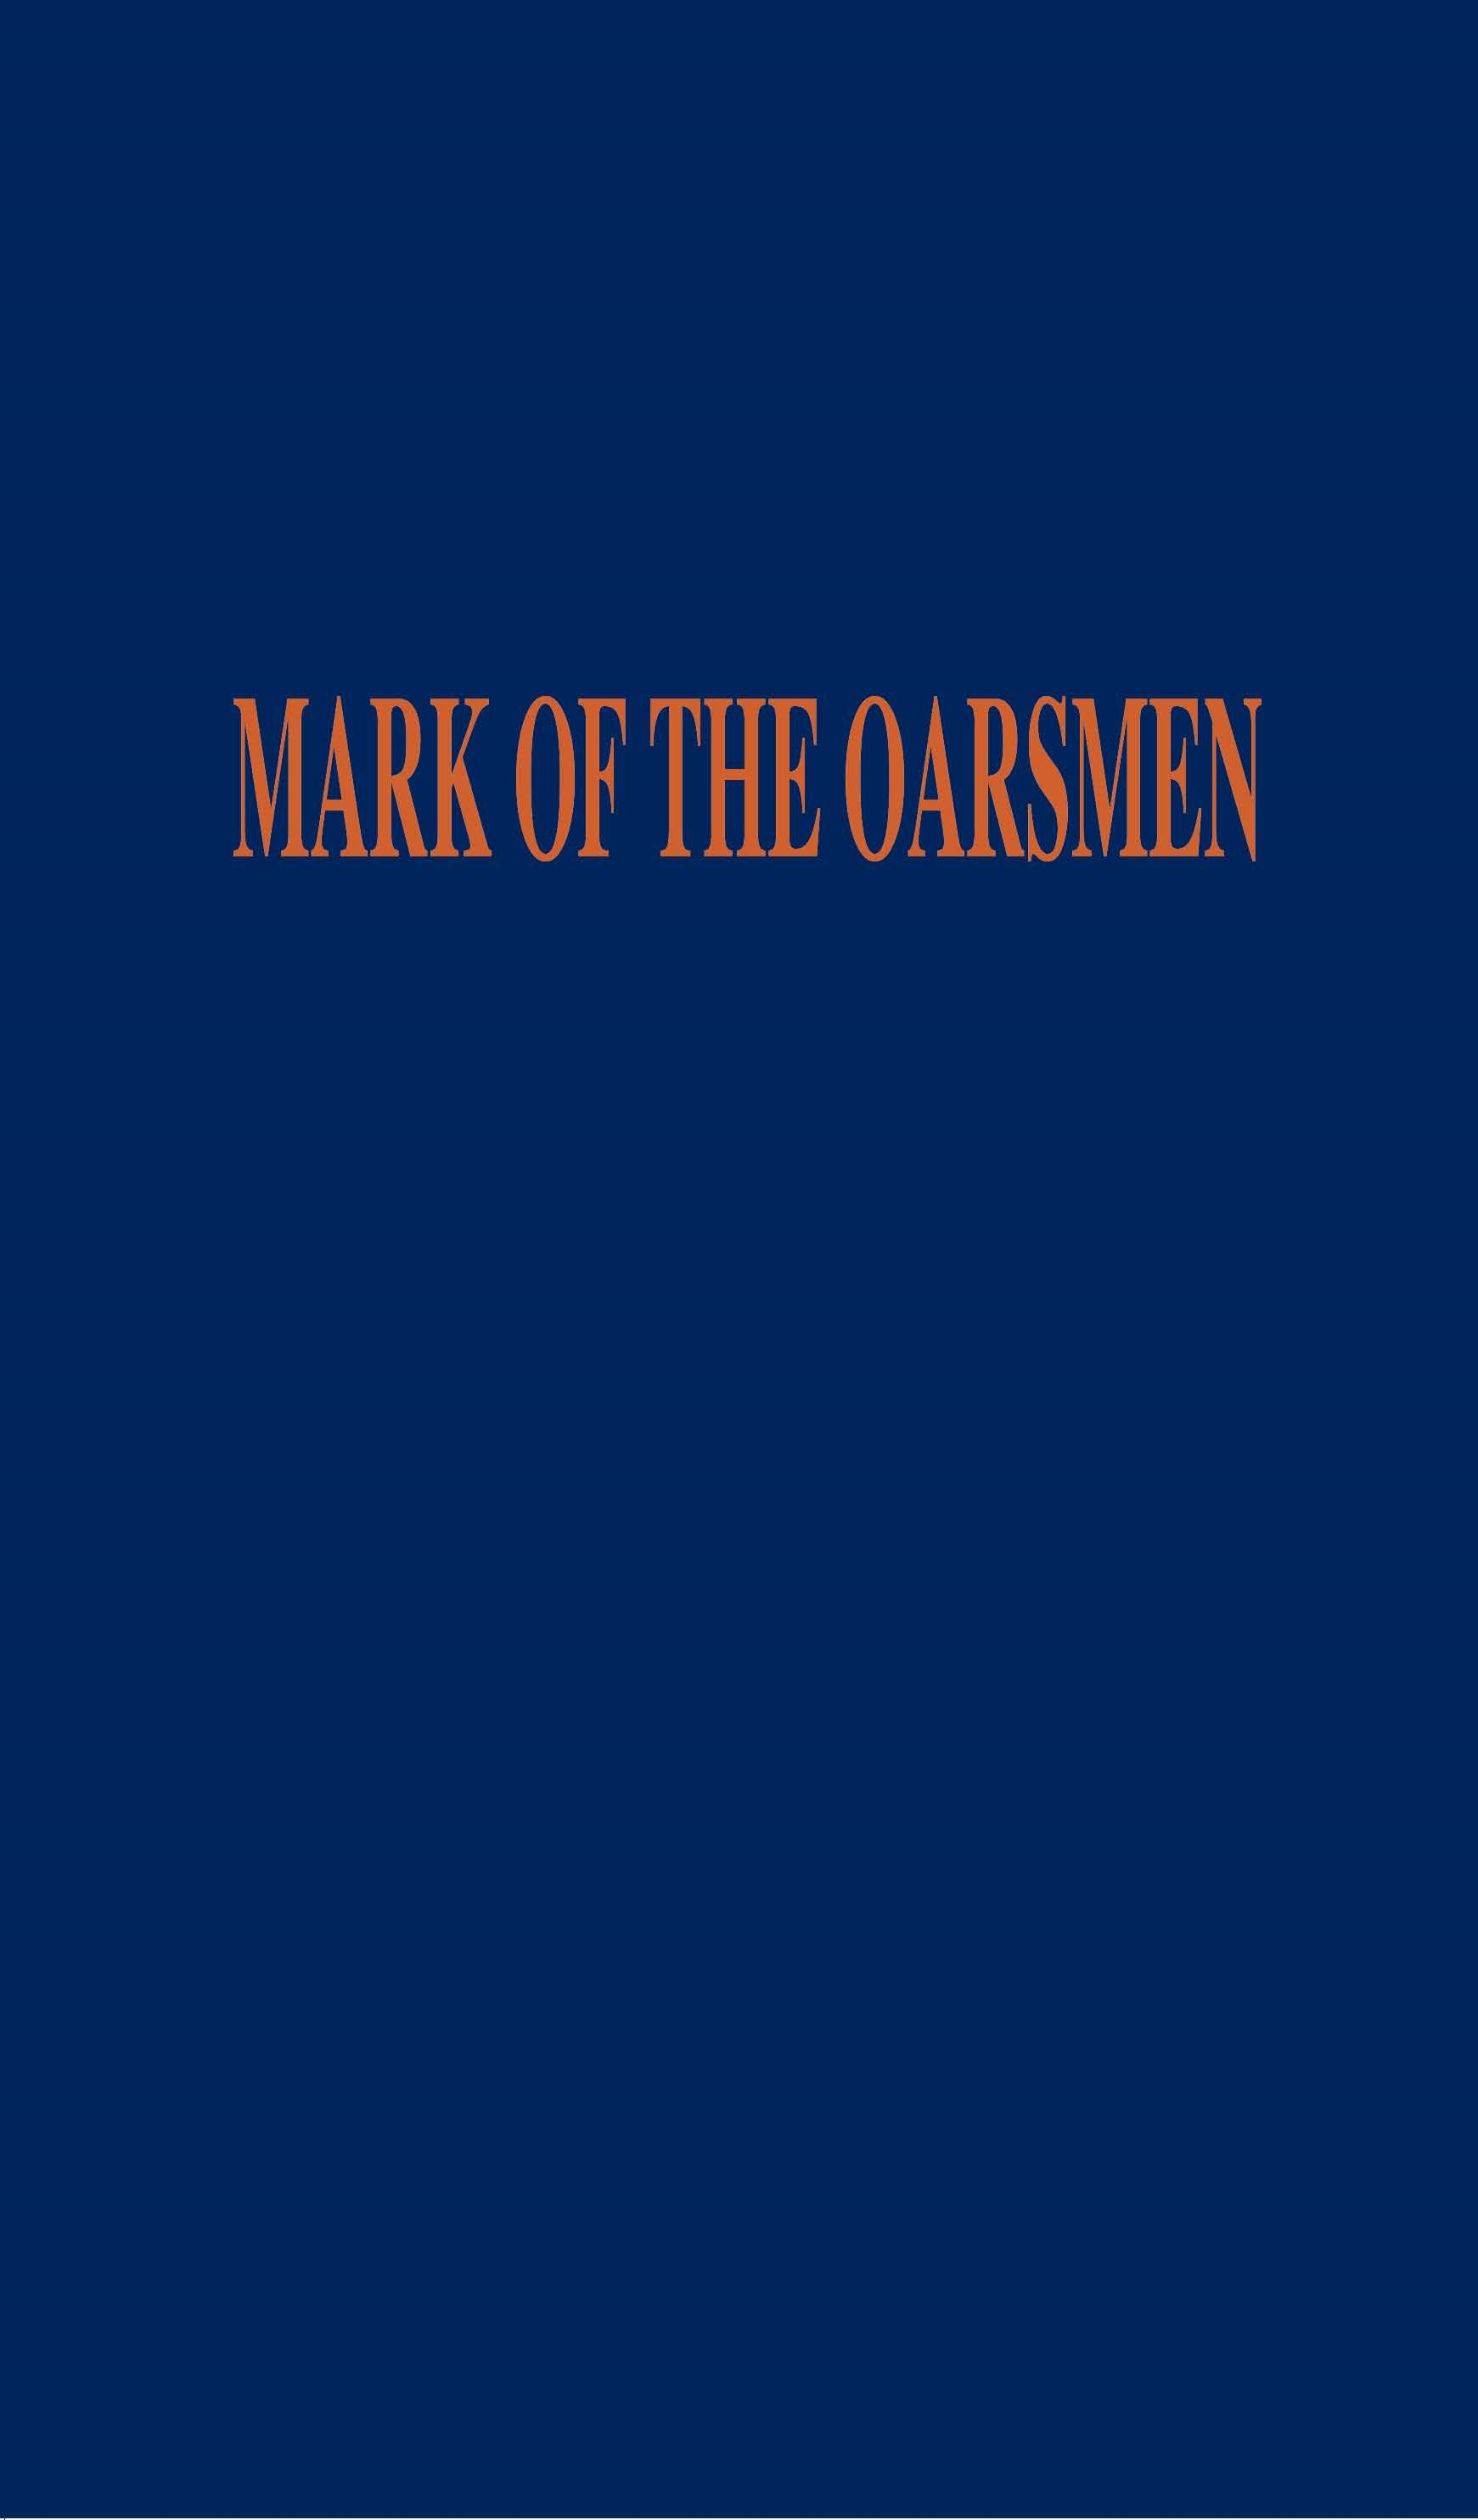 Mark of the Oarsmen